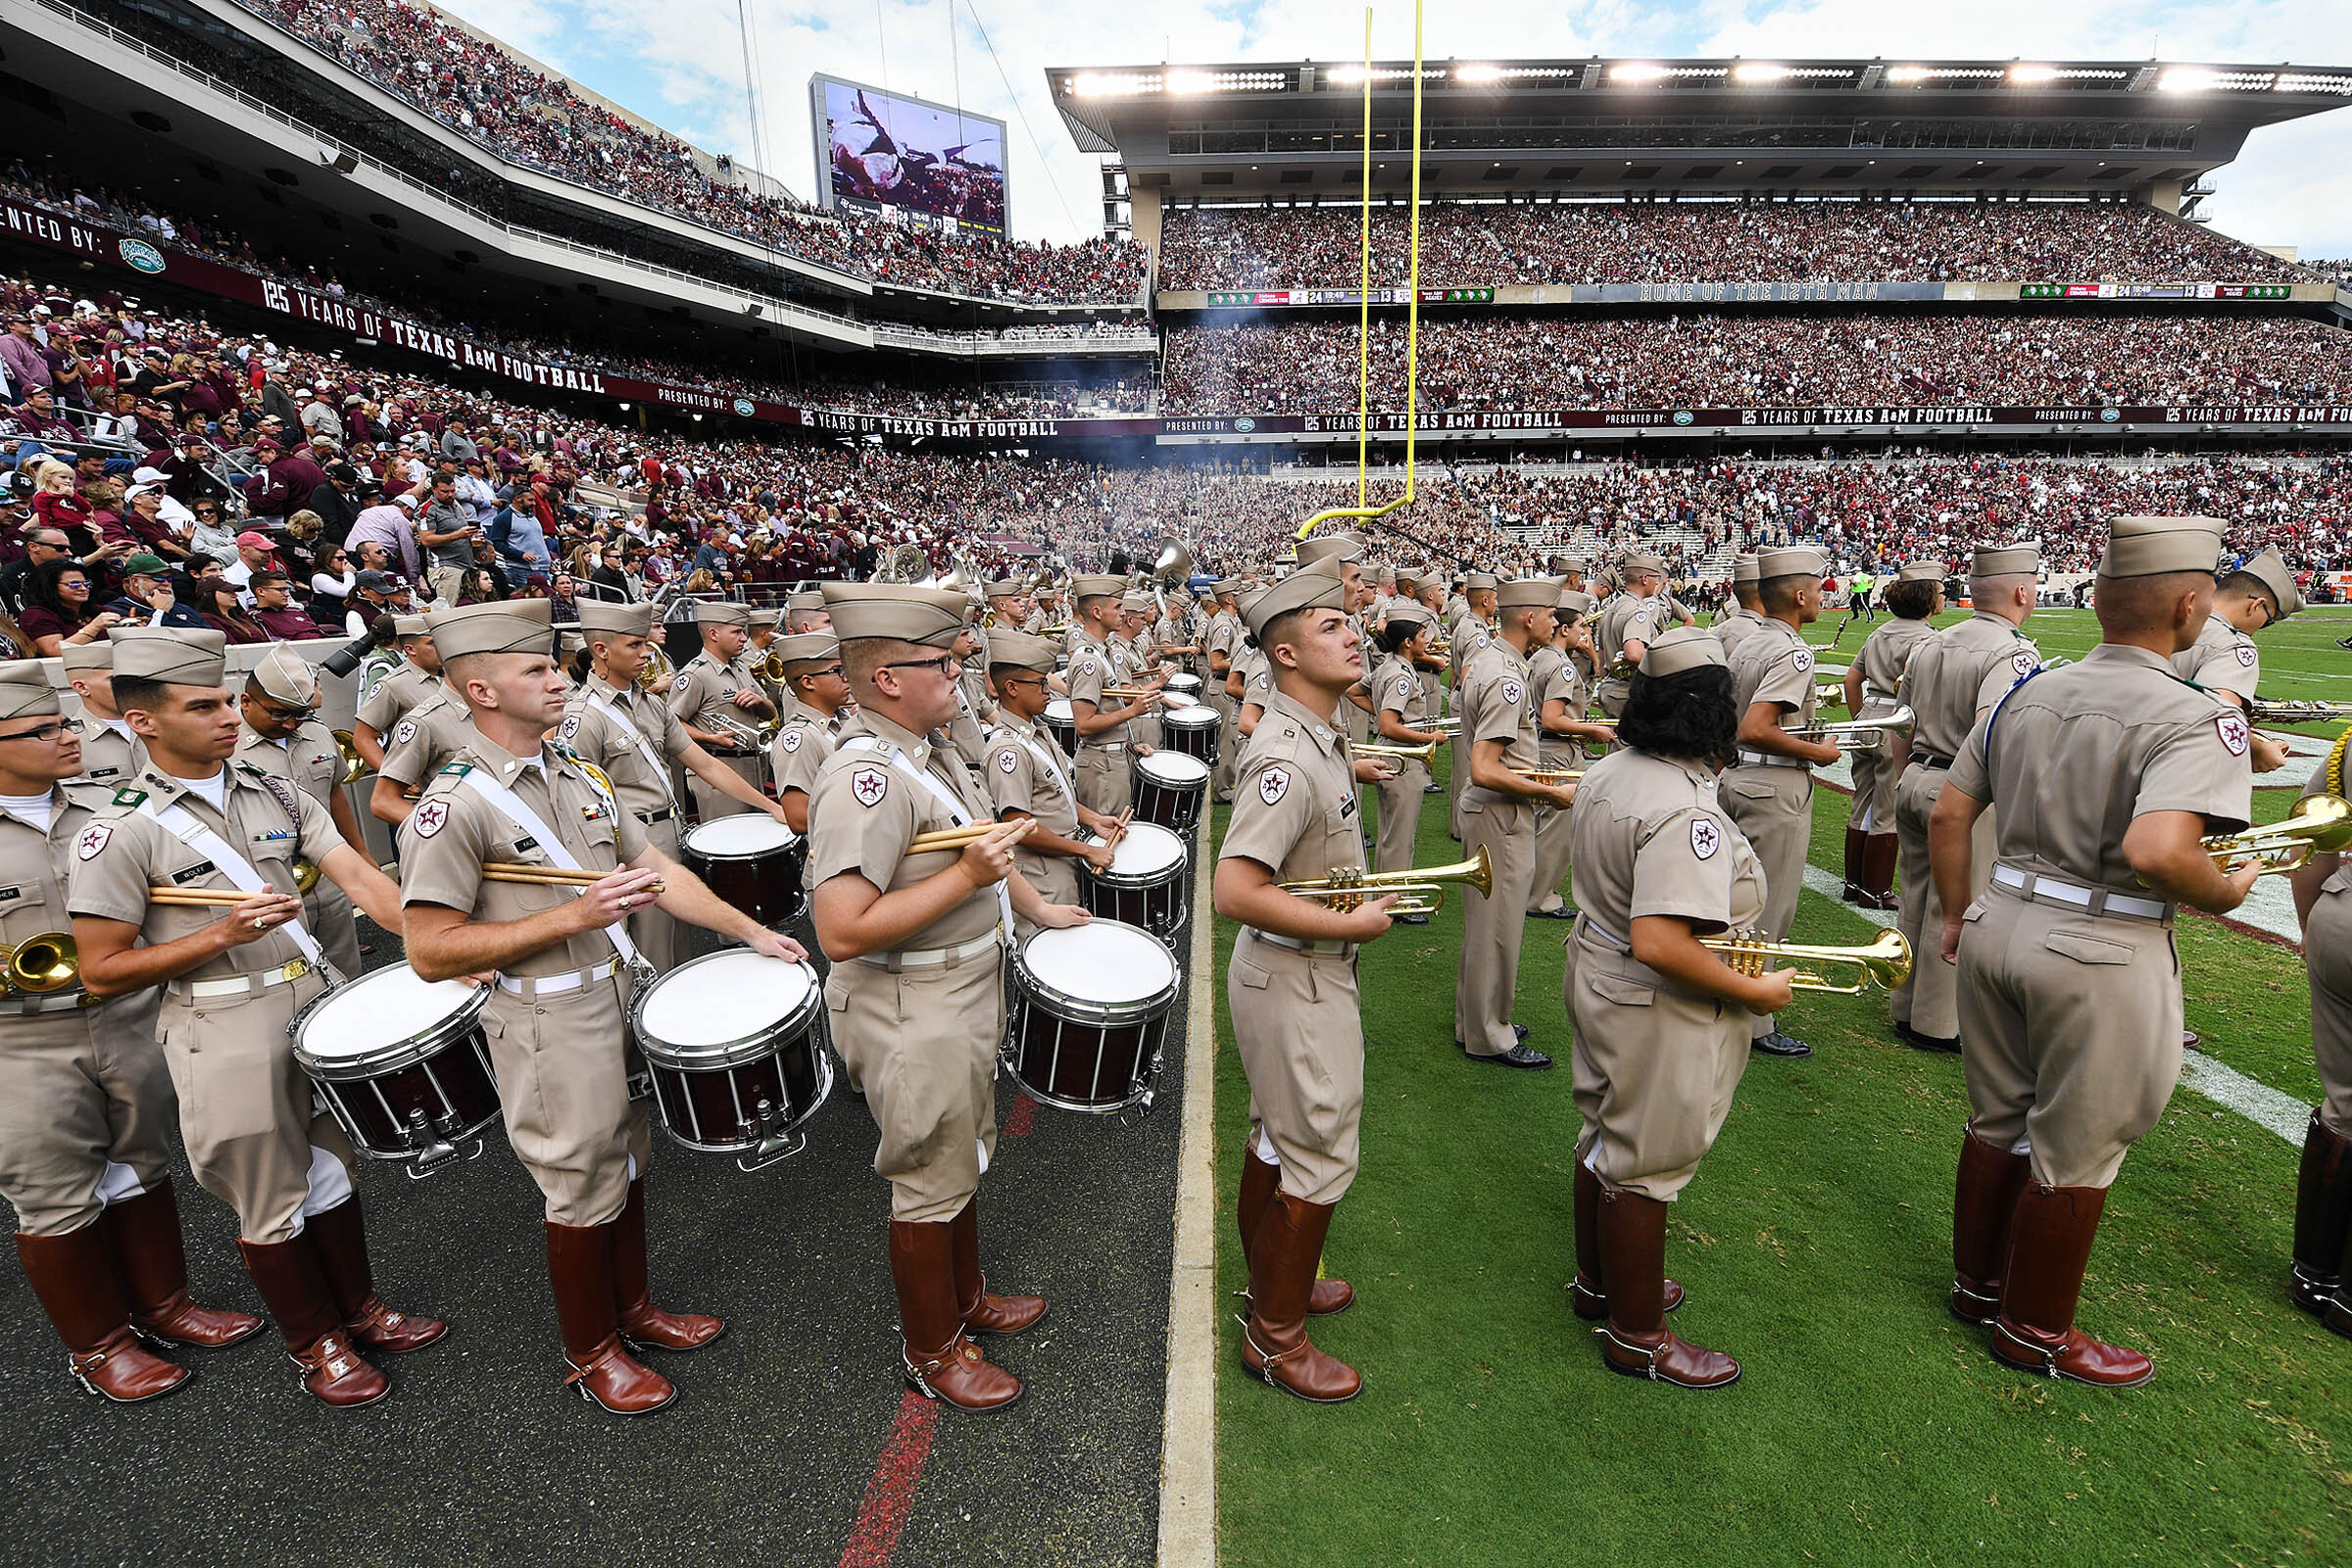 Members of the Fightin' Texas Aggie Band prepare to take the field for their halftime performance during an NCAA football game between Texas A&M and Alabama at Kyle Field on Saturday, Oct. 12, 2019, in College Station, Texas. (Laura McKenzie/The Eagle)